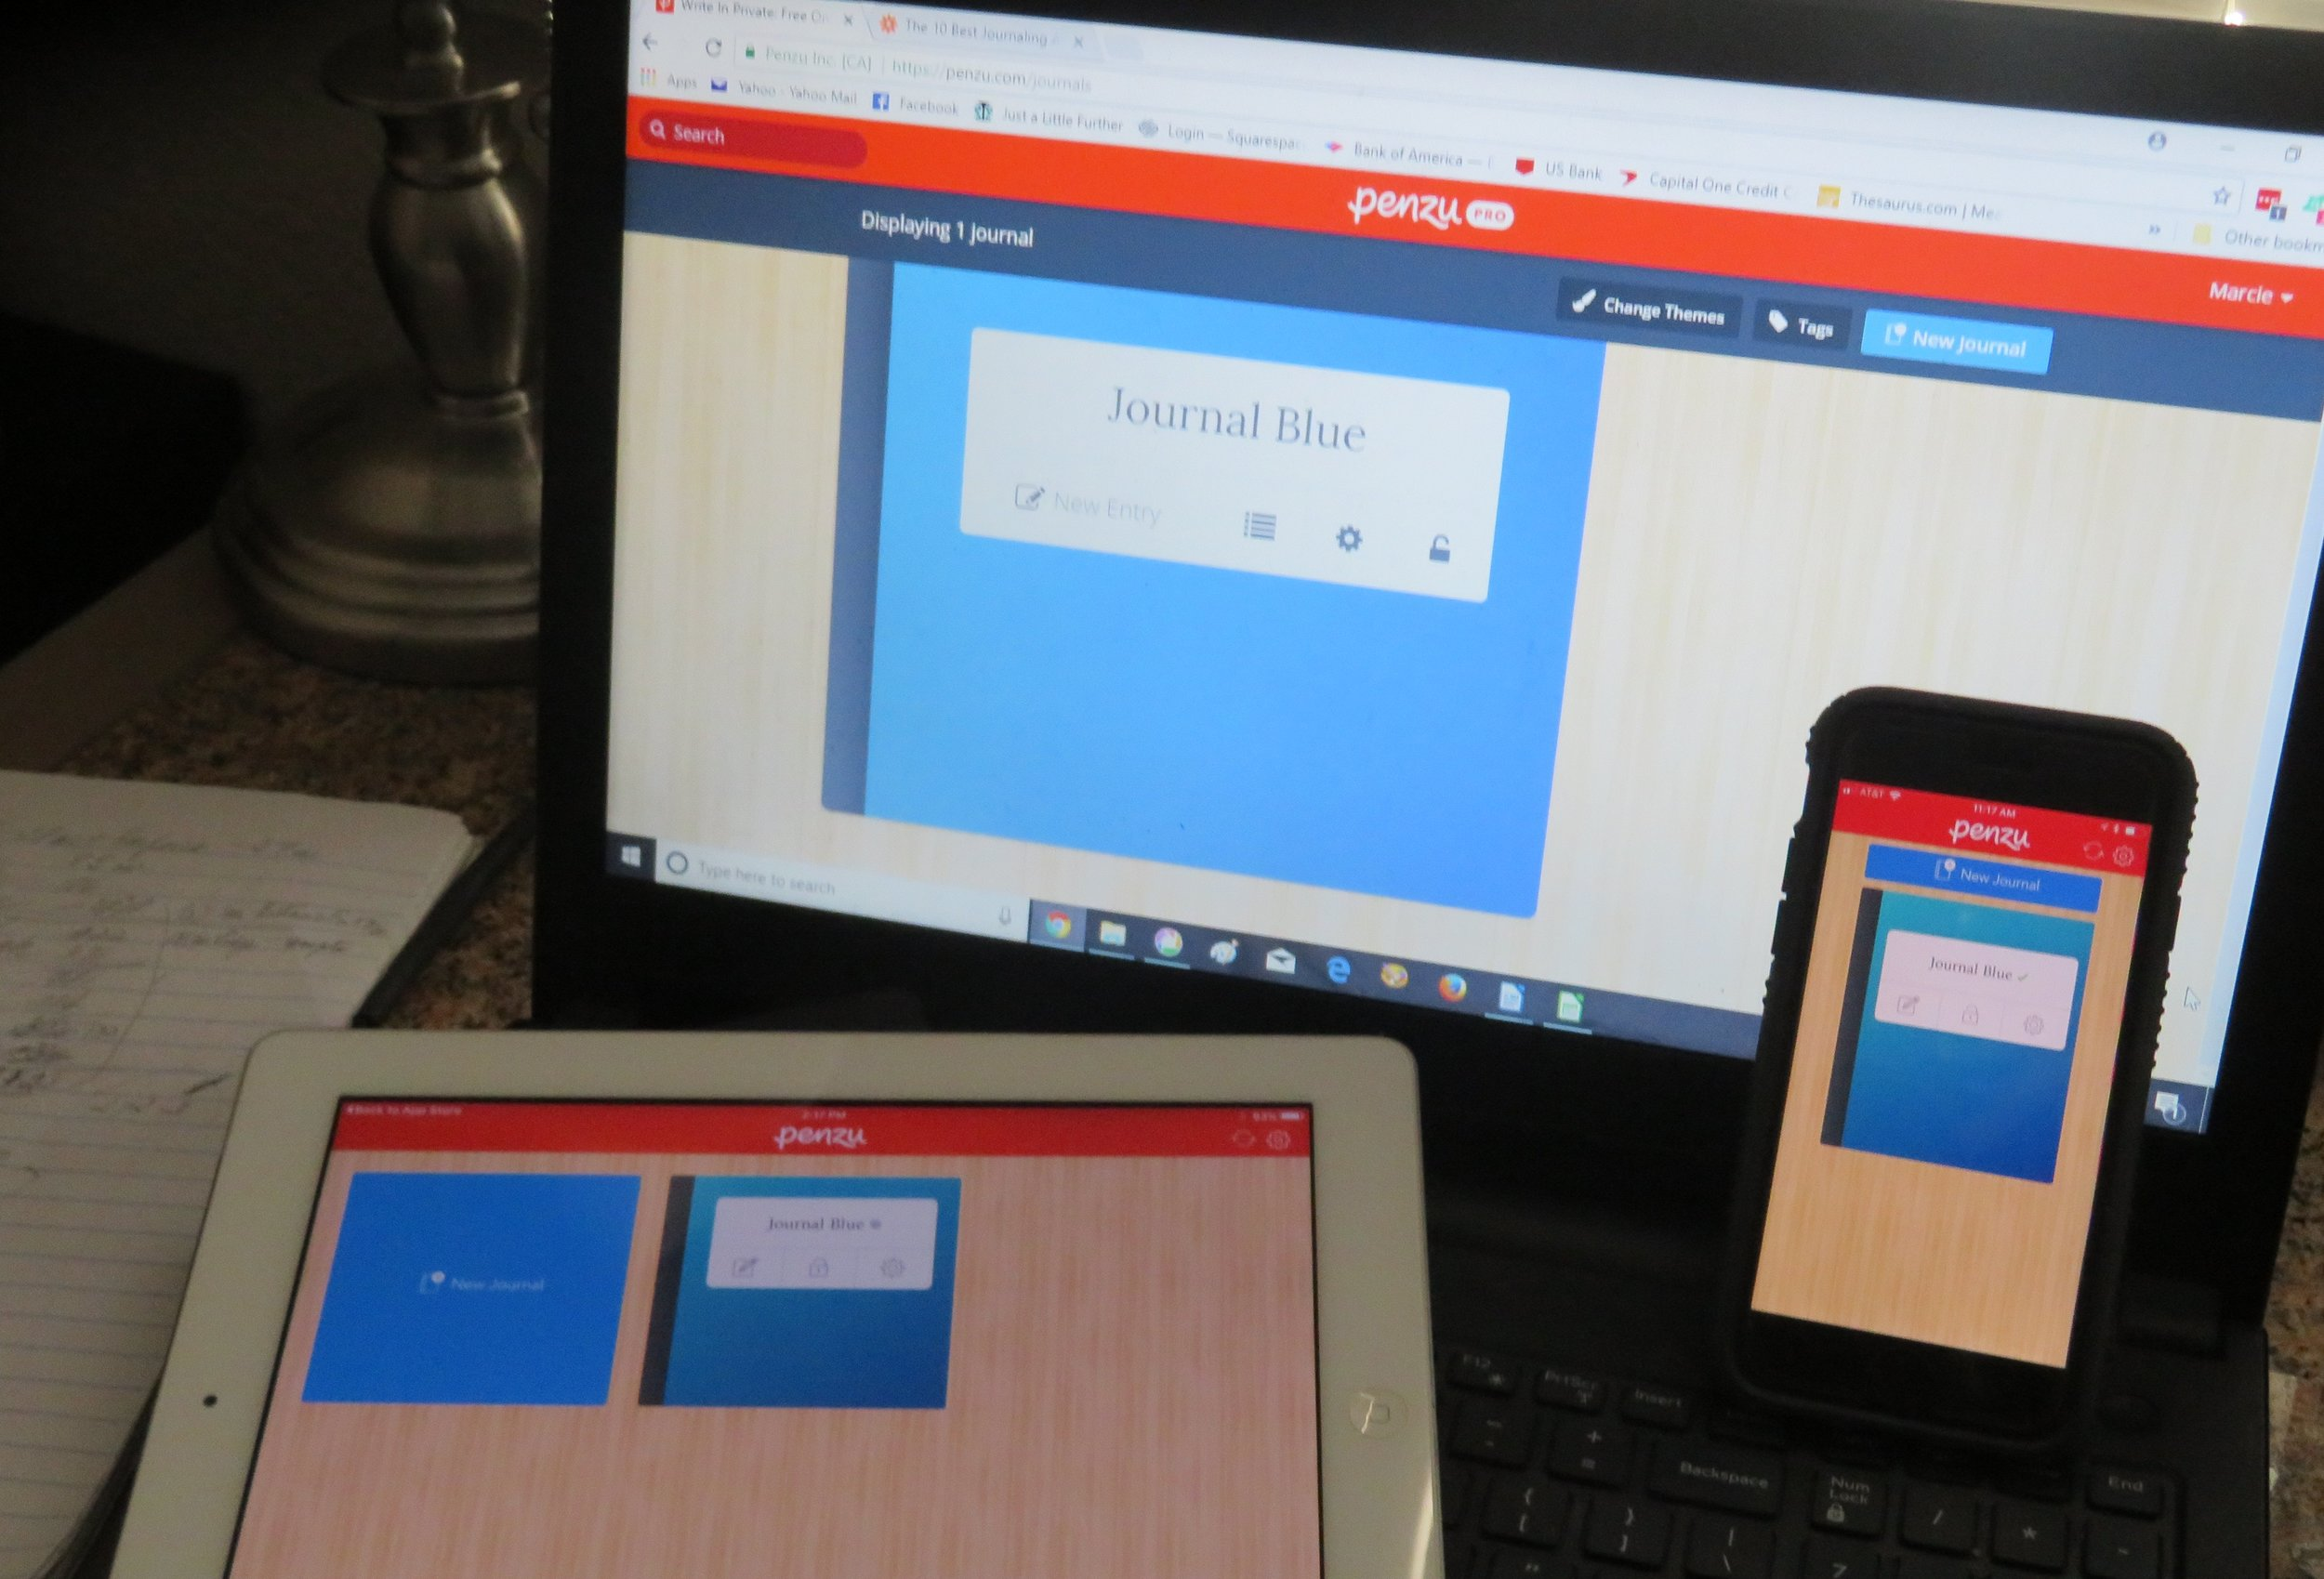 I downloaded the Penzu app to my laptop, iPhone and iPad